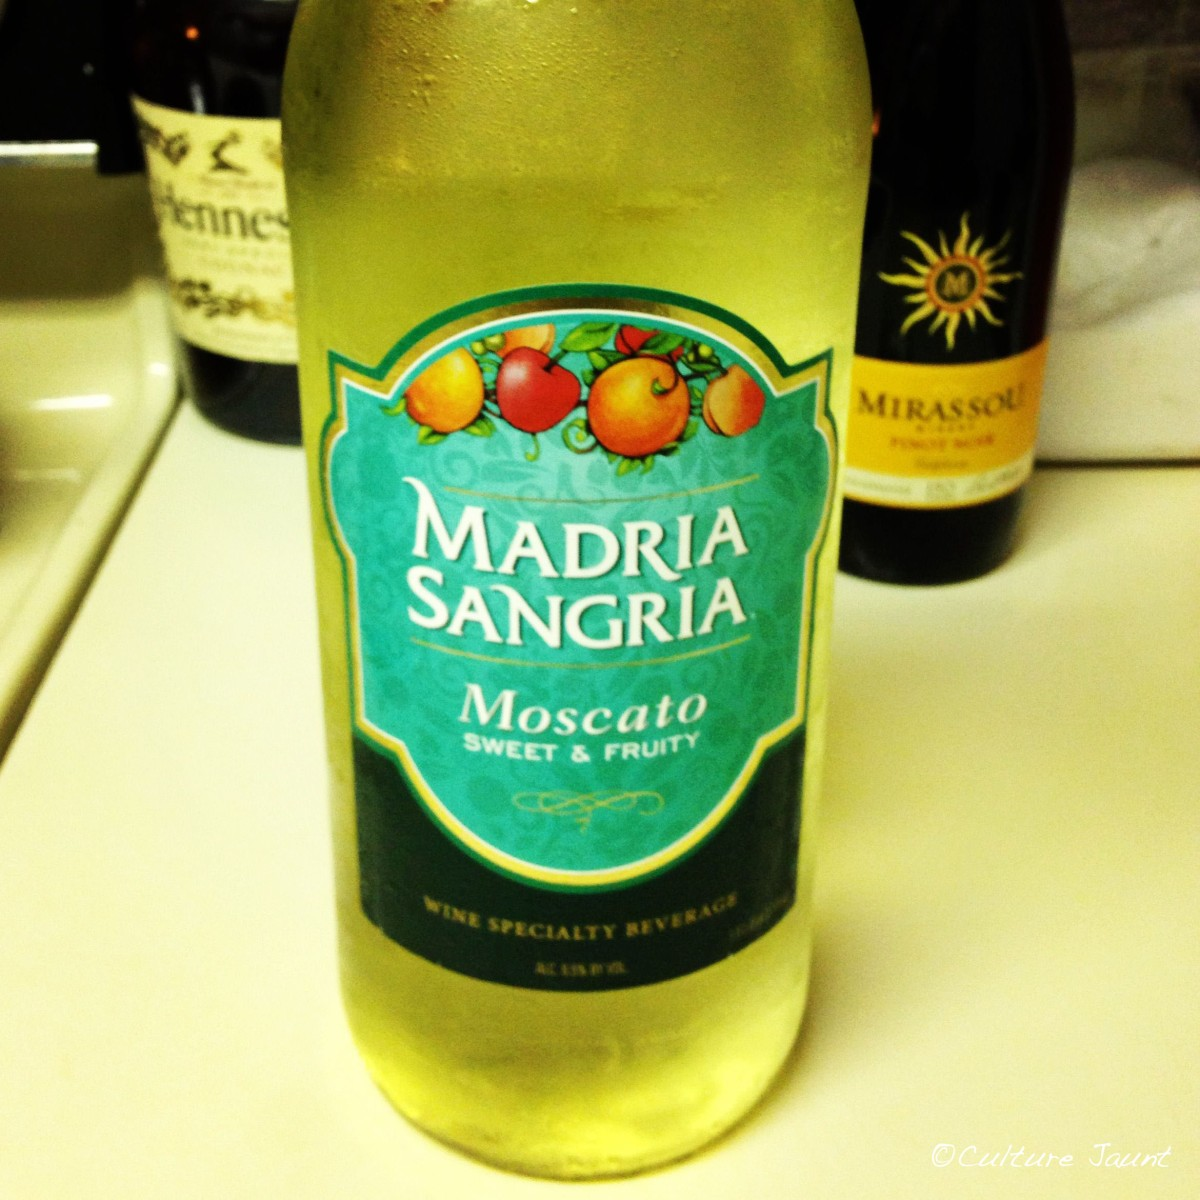 Madria Sangria: Just Add Fruit